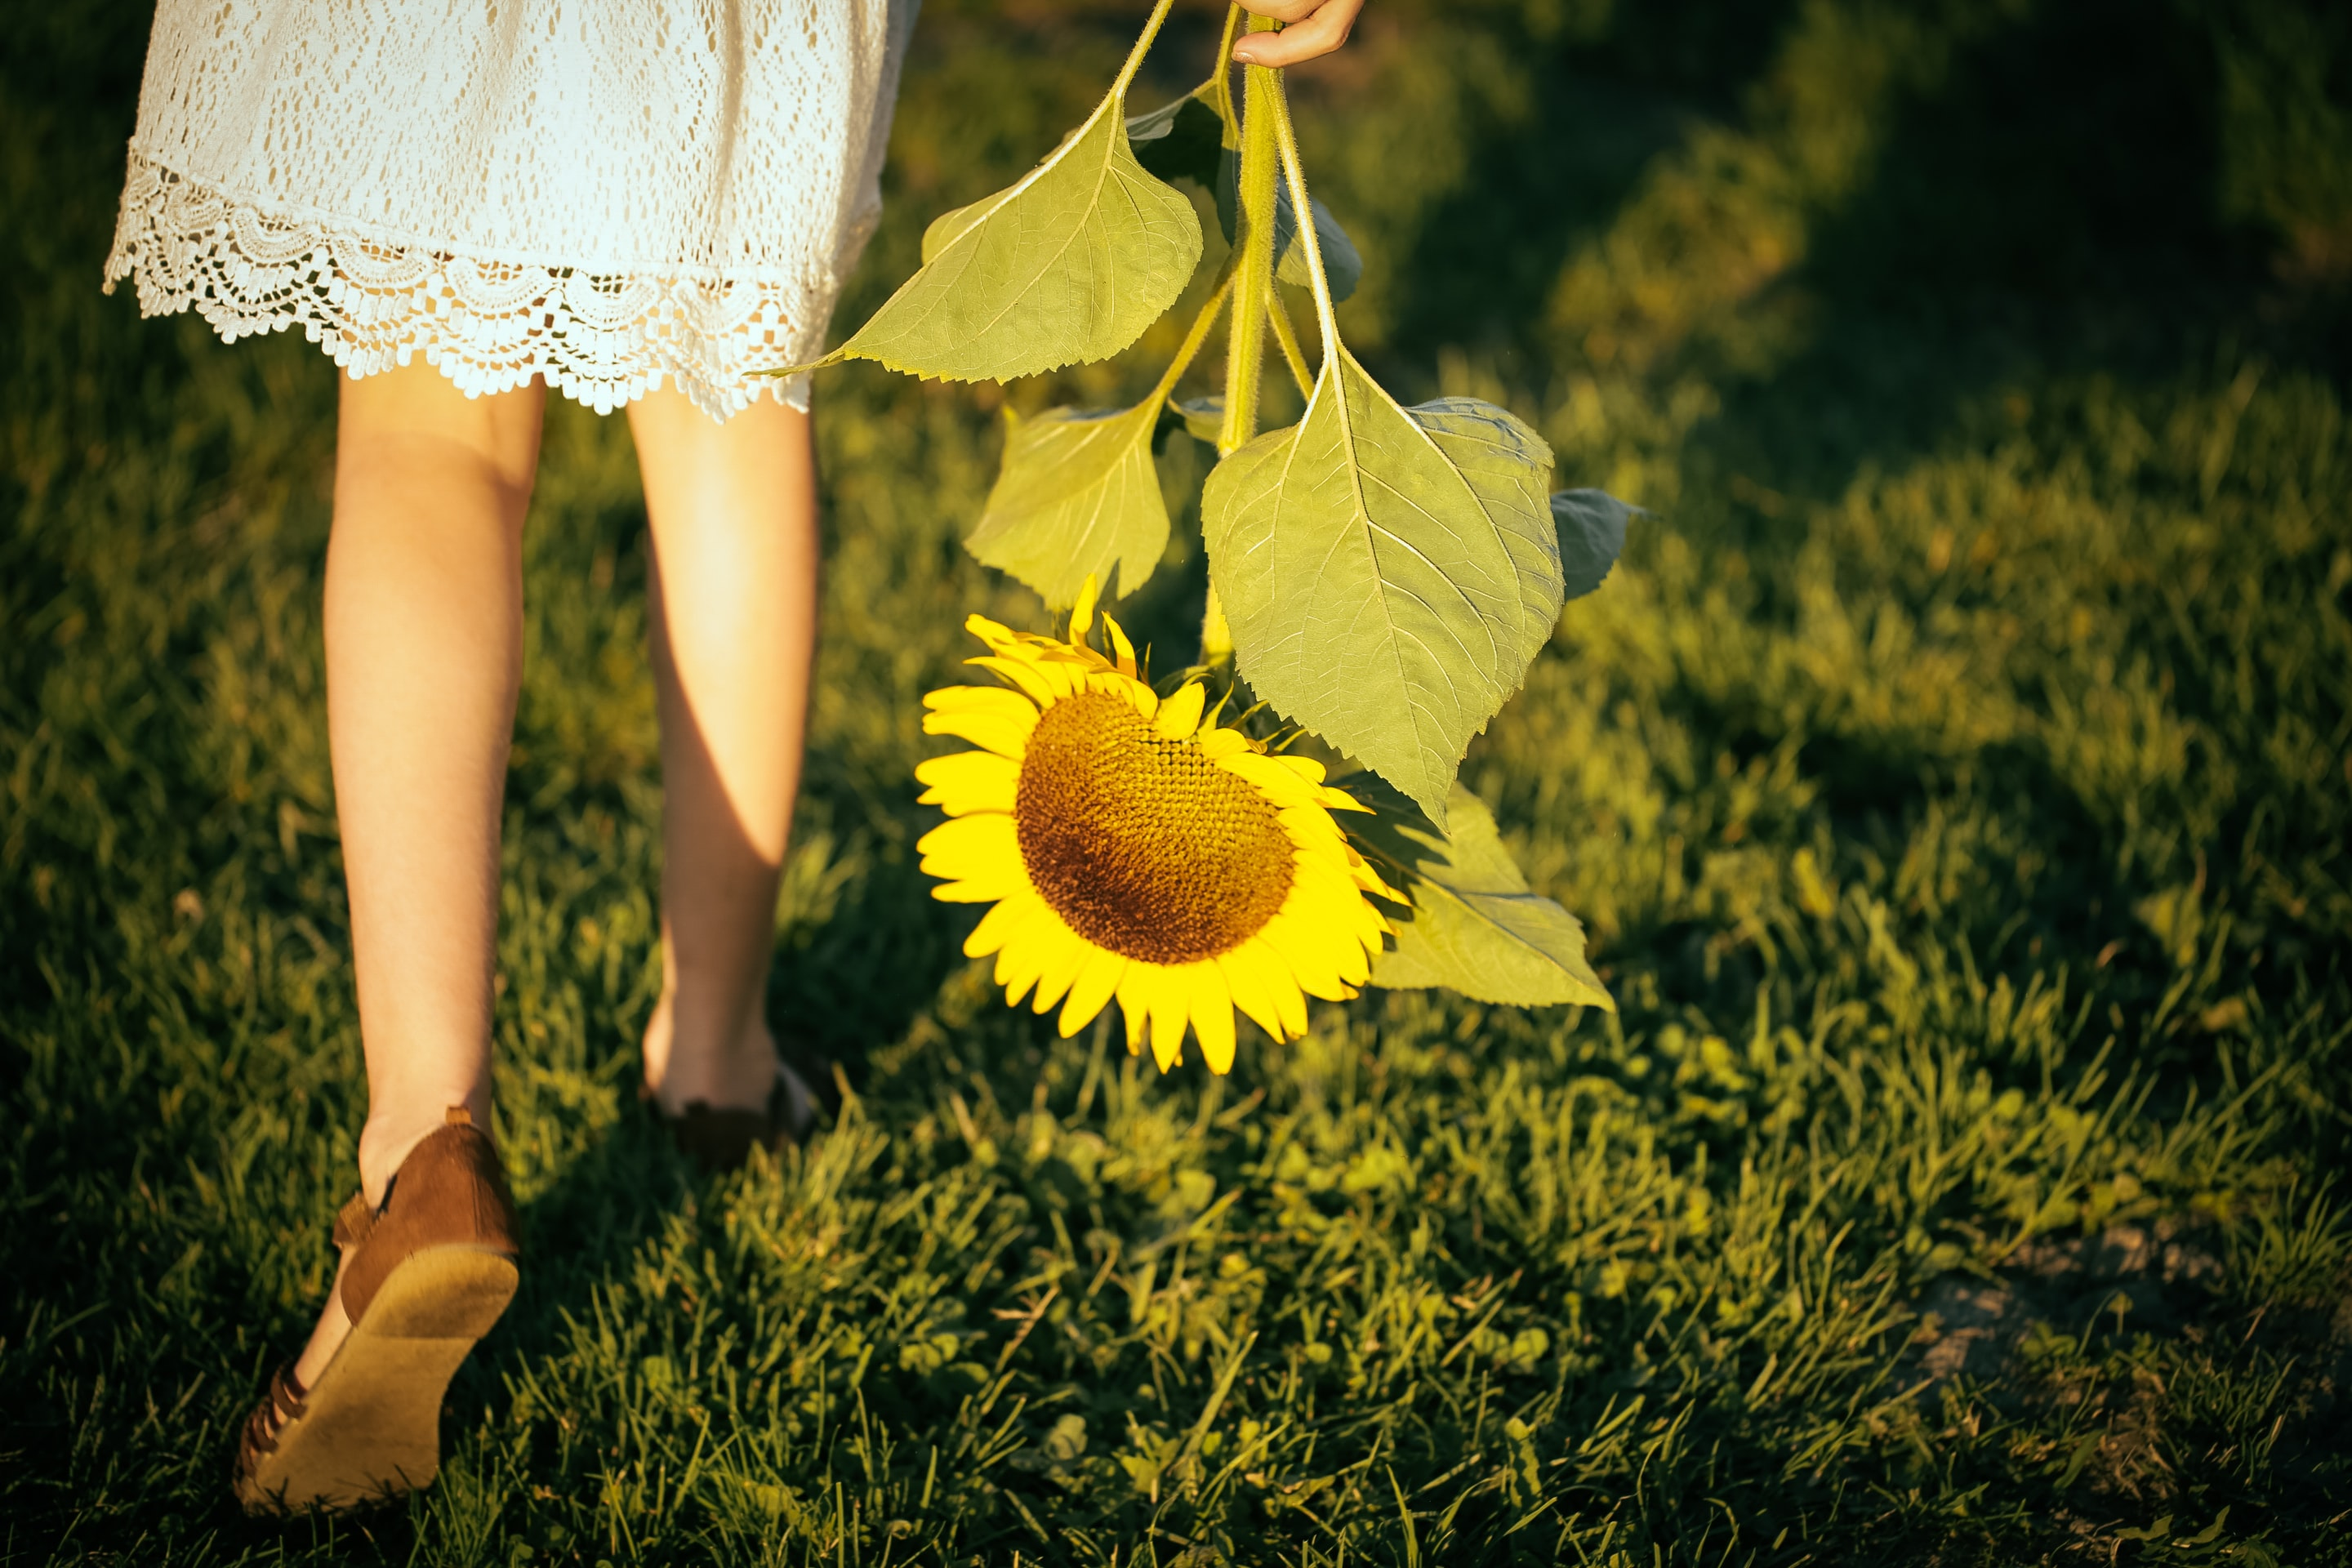 girl walking on grass field holding sunflower during day